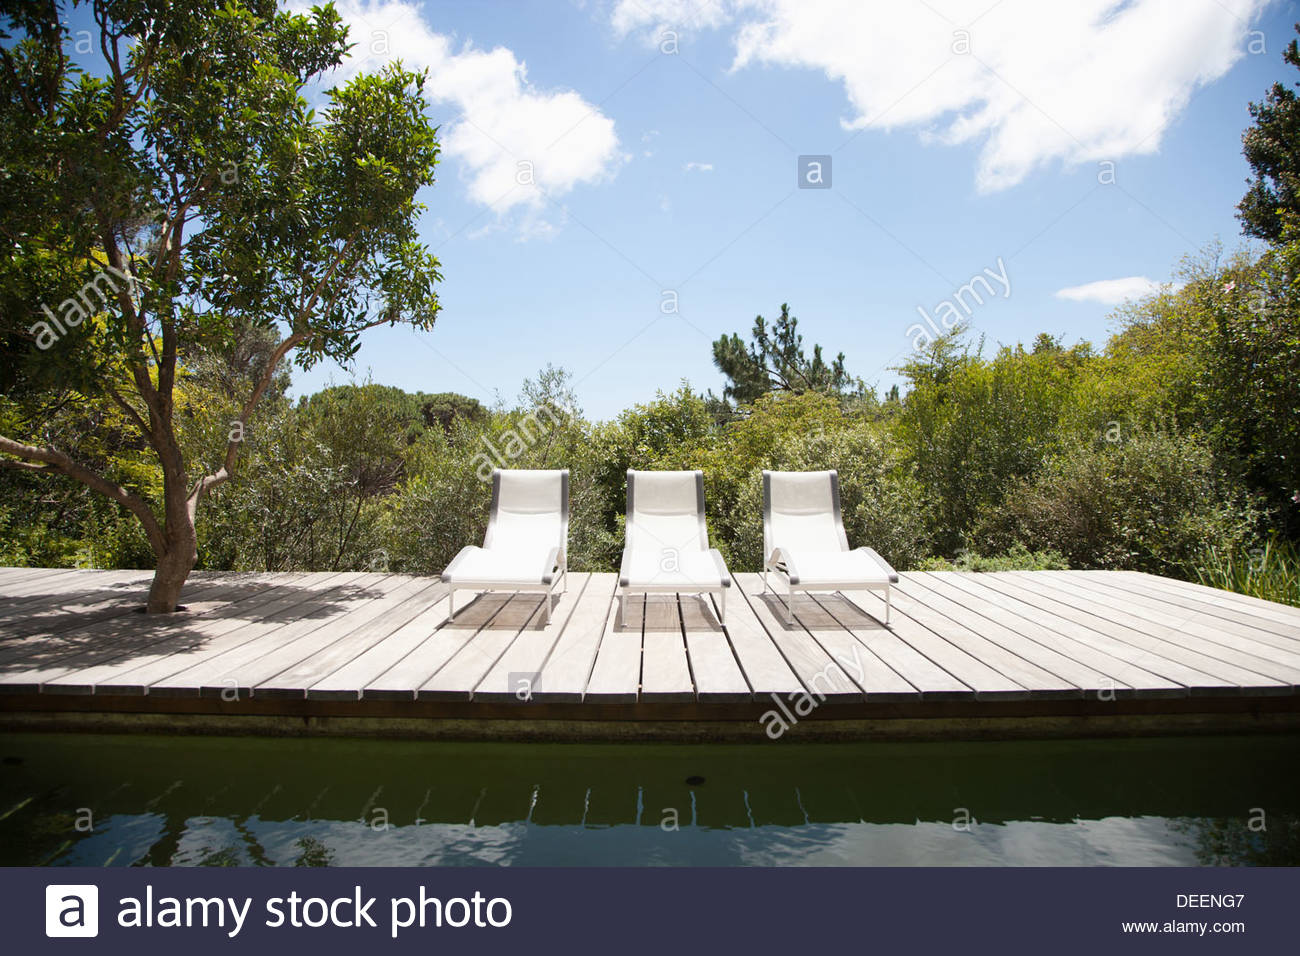 Swimming pool and lounge chairs - Stock Image